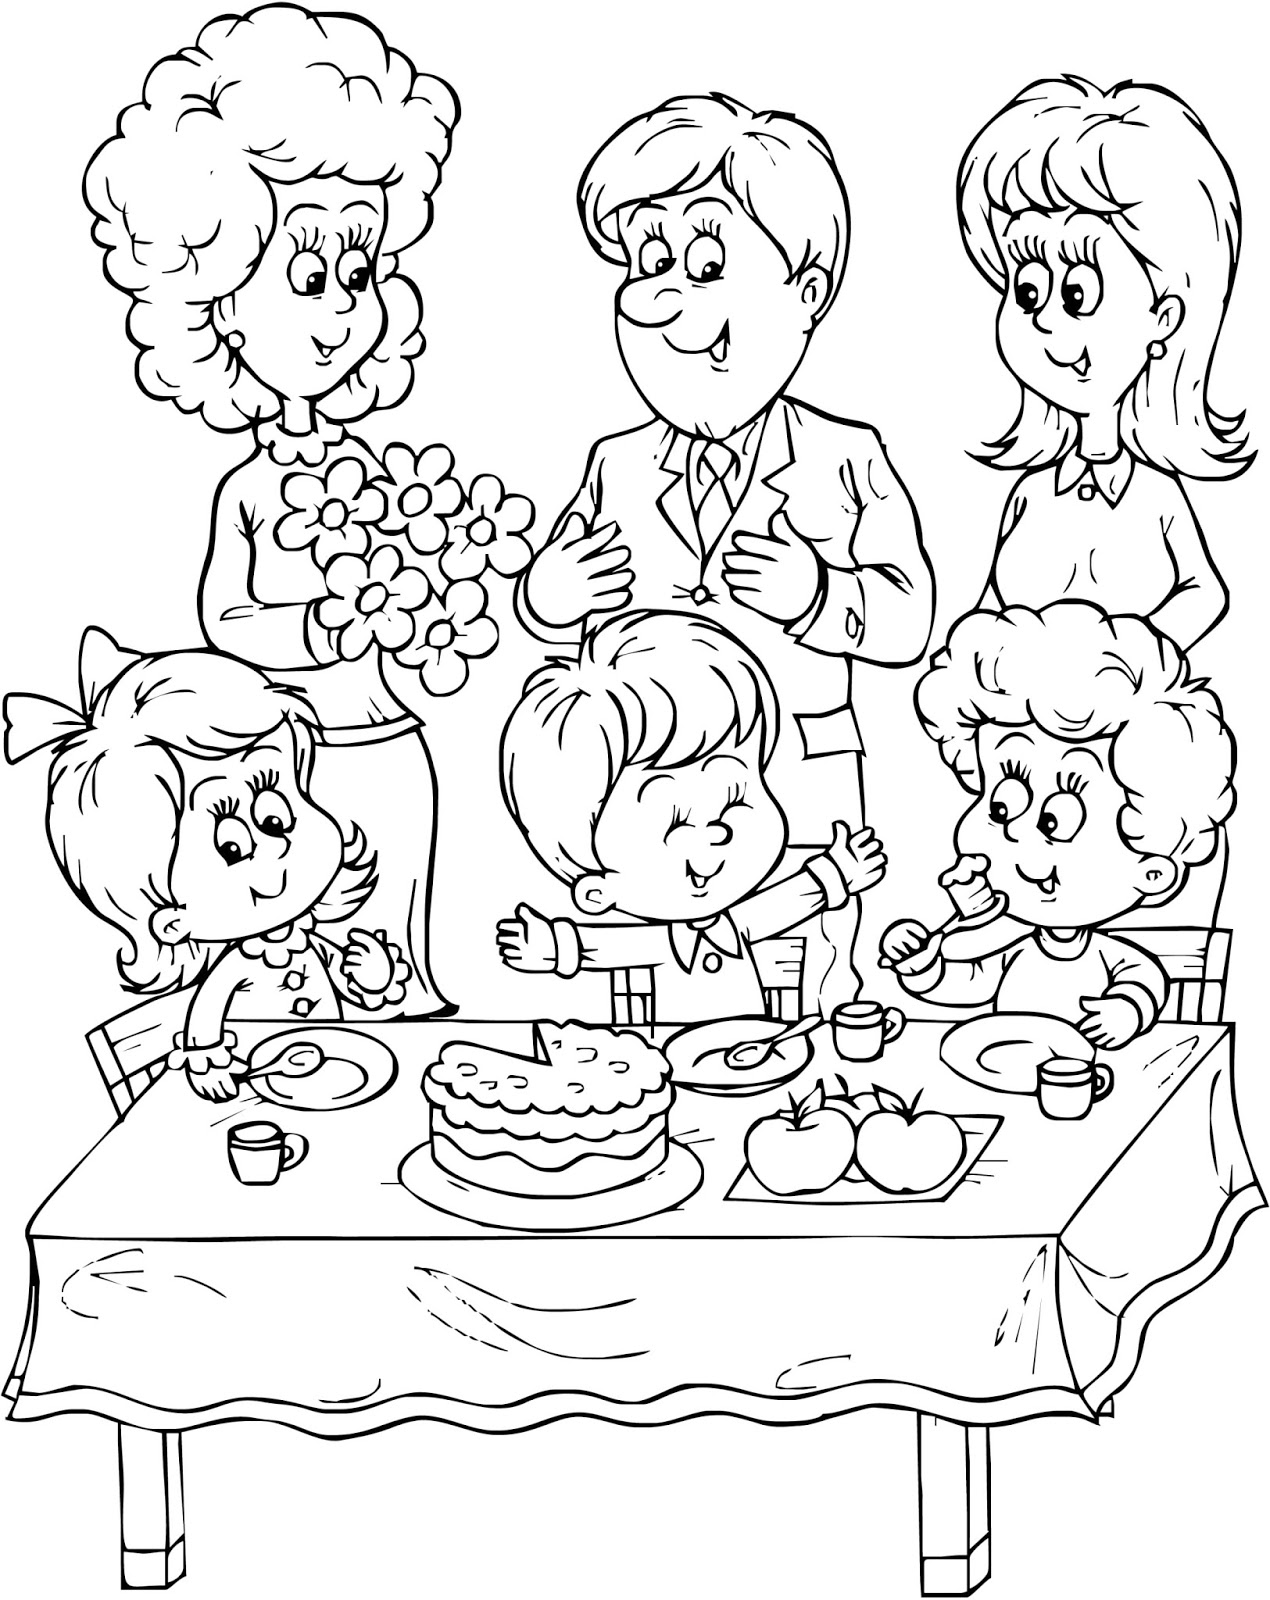 Photograph Families Coloring Pages Family People And Jobs